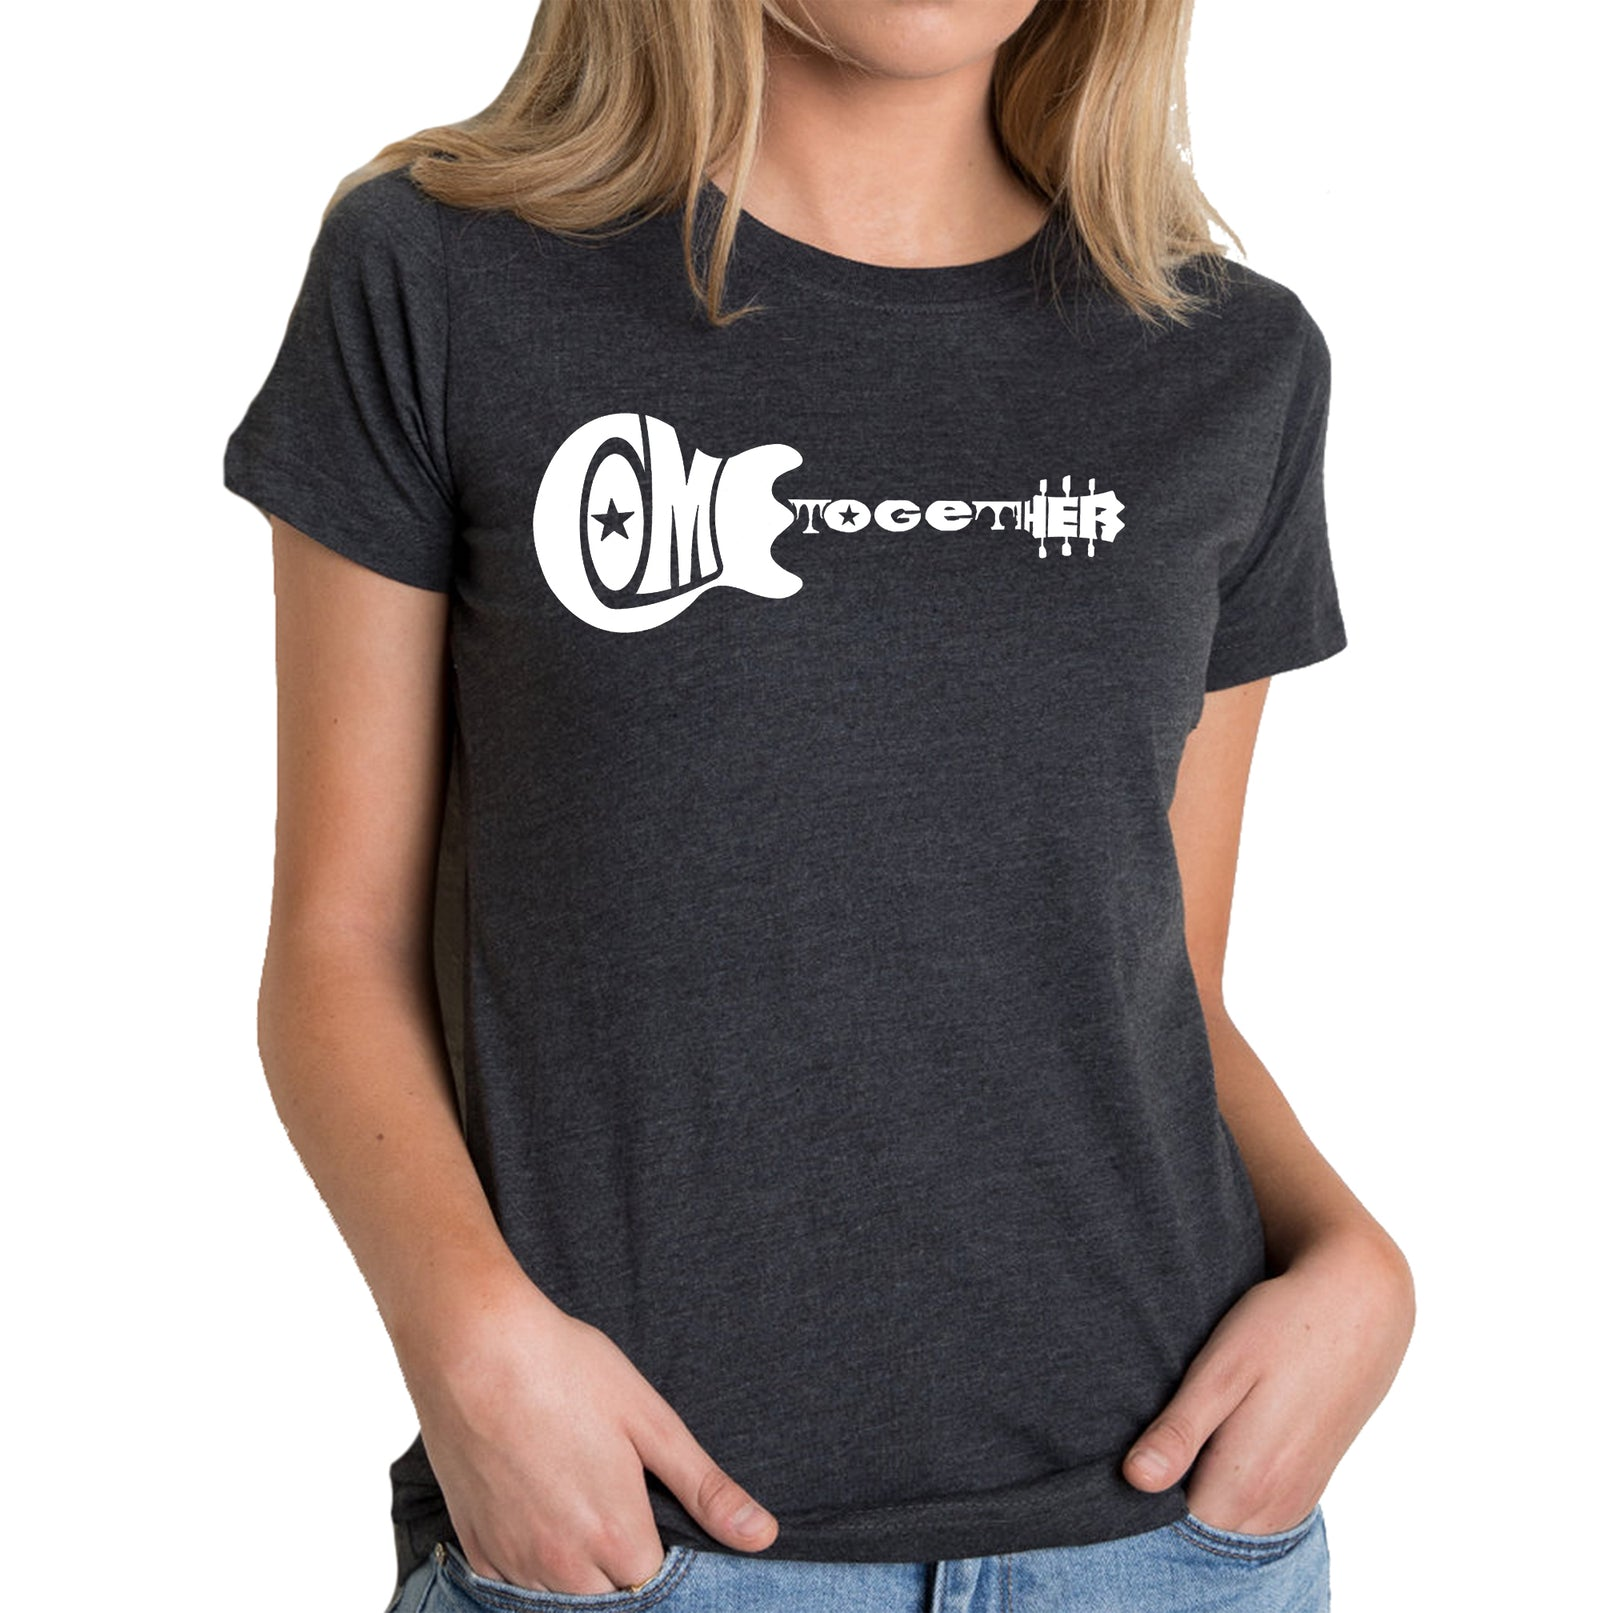 Women's Premium Blend Word Art T-shirt - COME TOGETHER